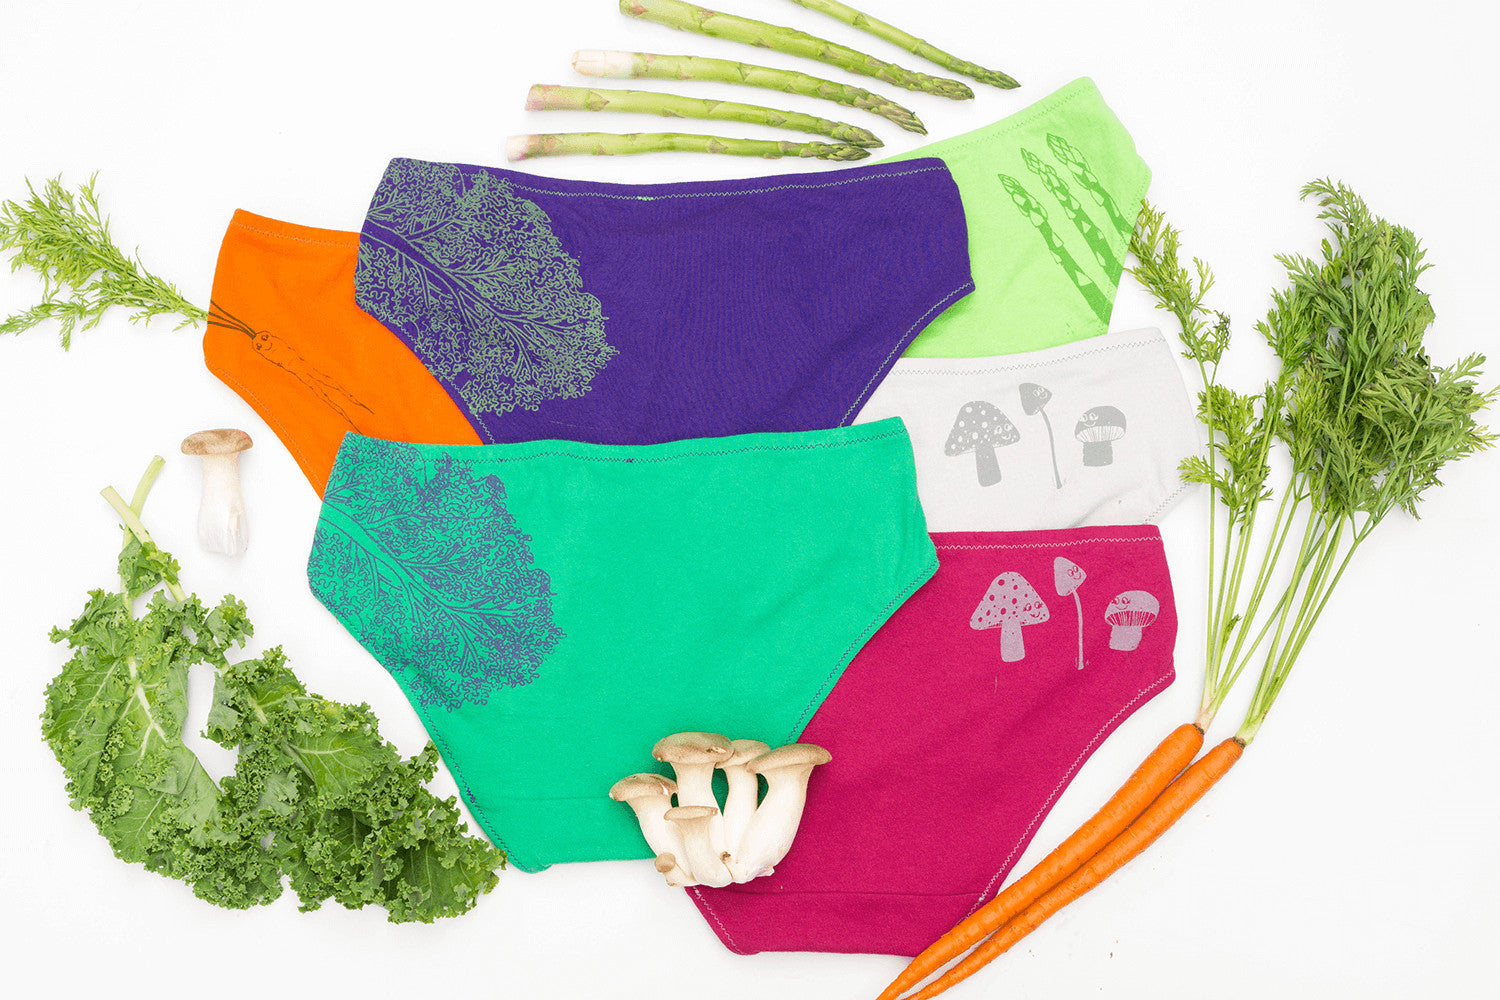 Kale, carrot, mushroom and asparagus underwear! New for fall from La Vie en Orange